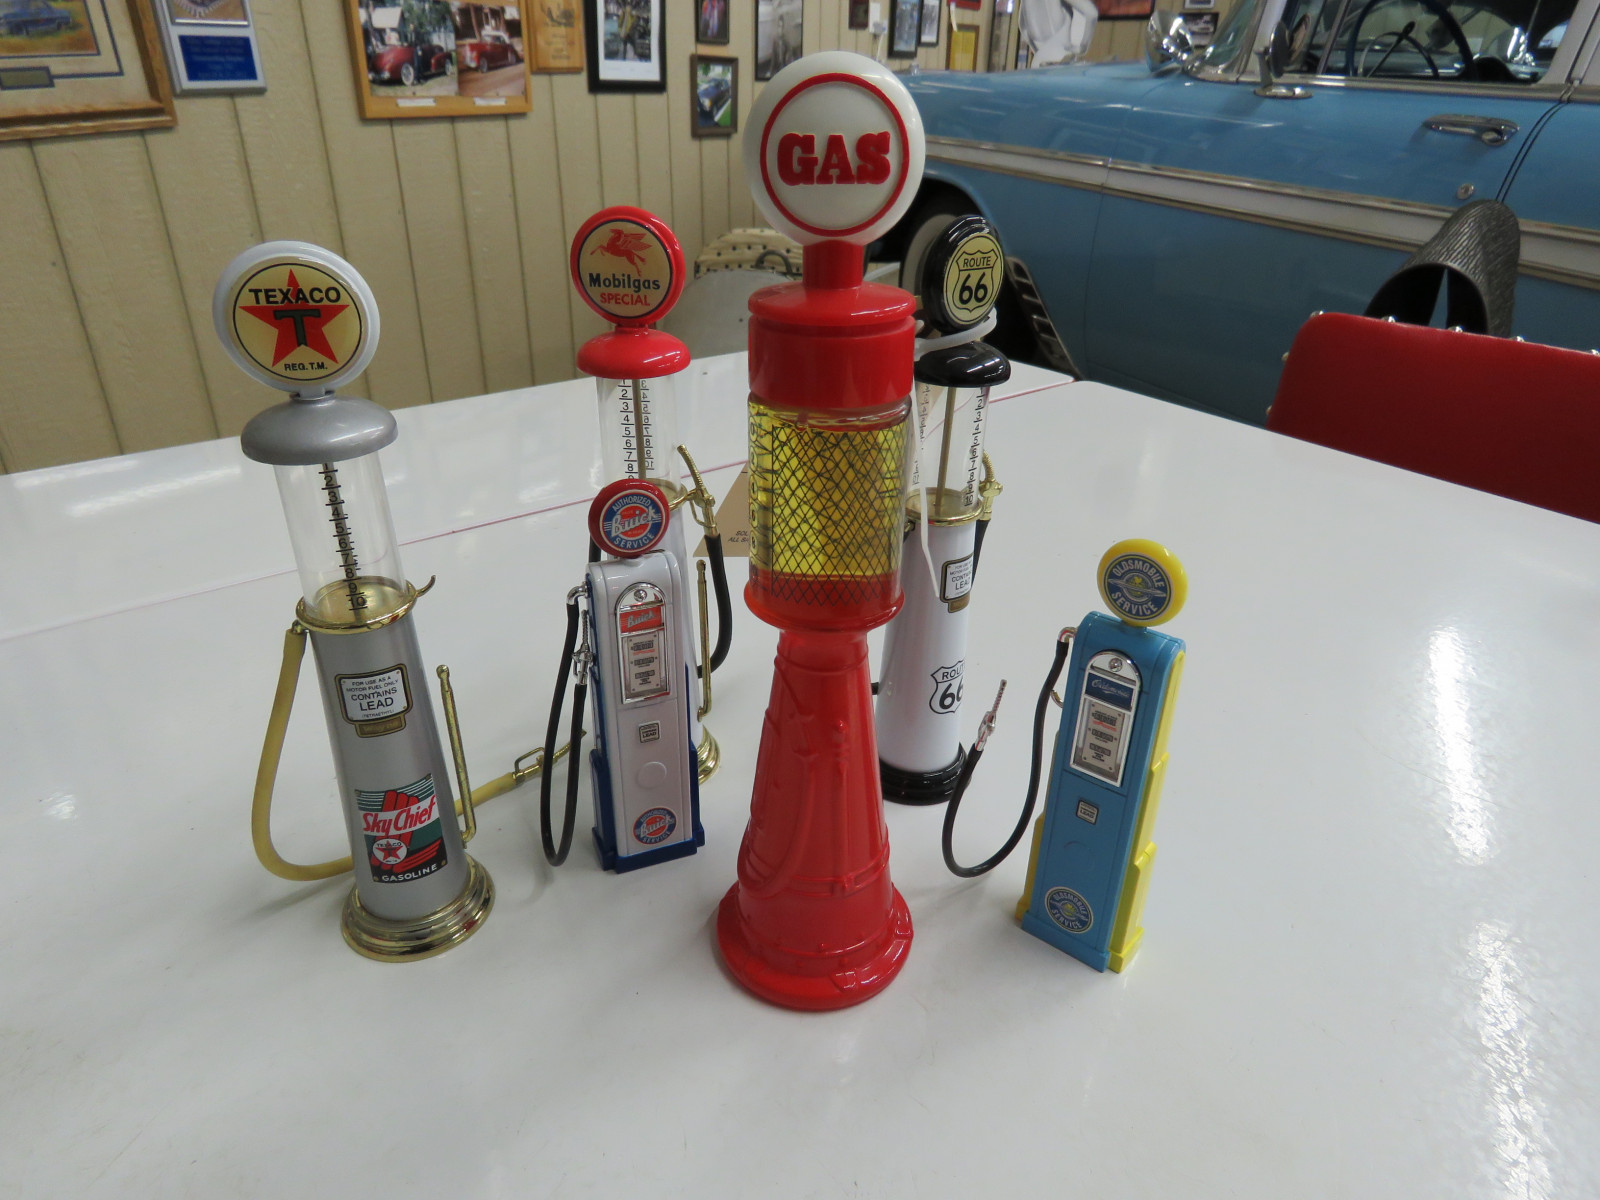 Grouping of Decorative Gas Pumps and Avon Gas Pump - Image 1